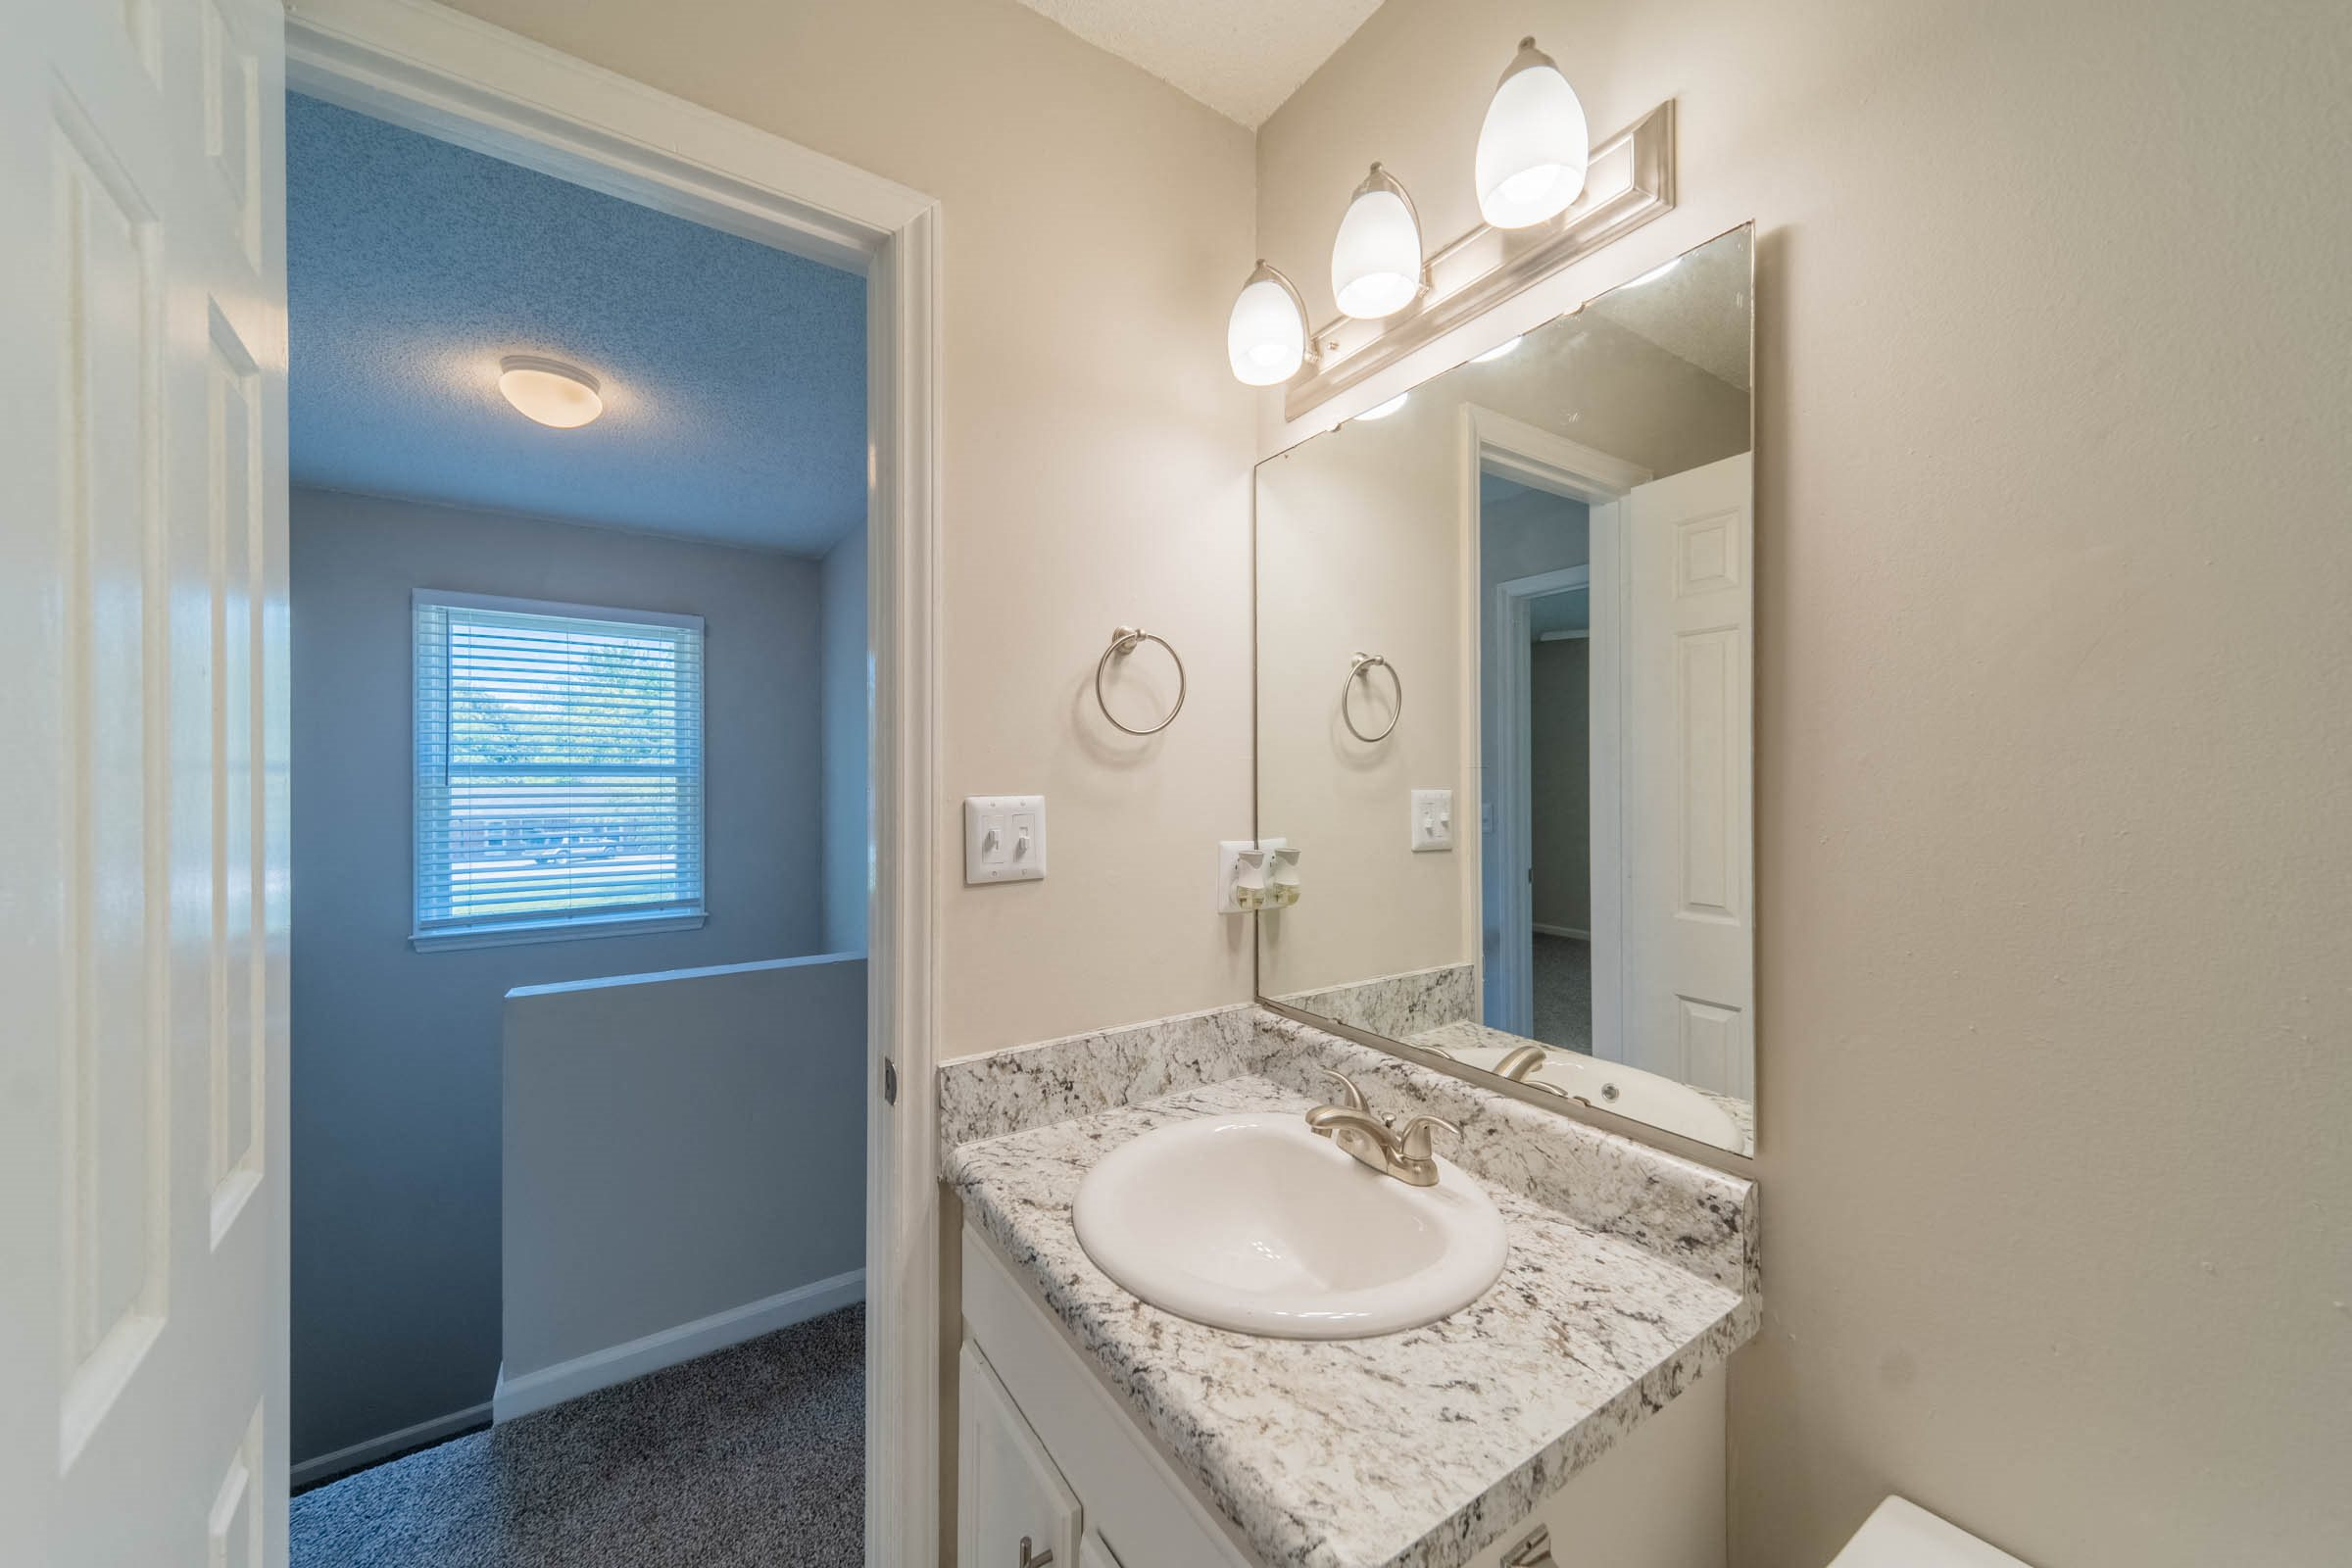 Photos And Video Of Residences At Belmont In Belmont Nc